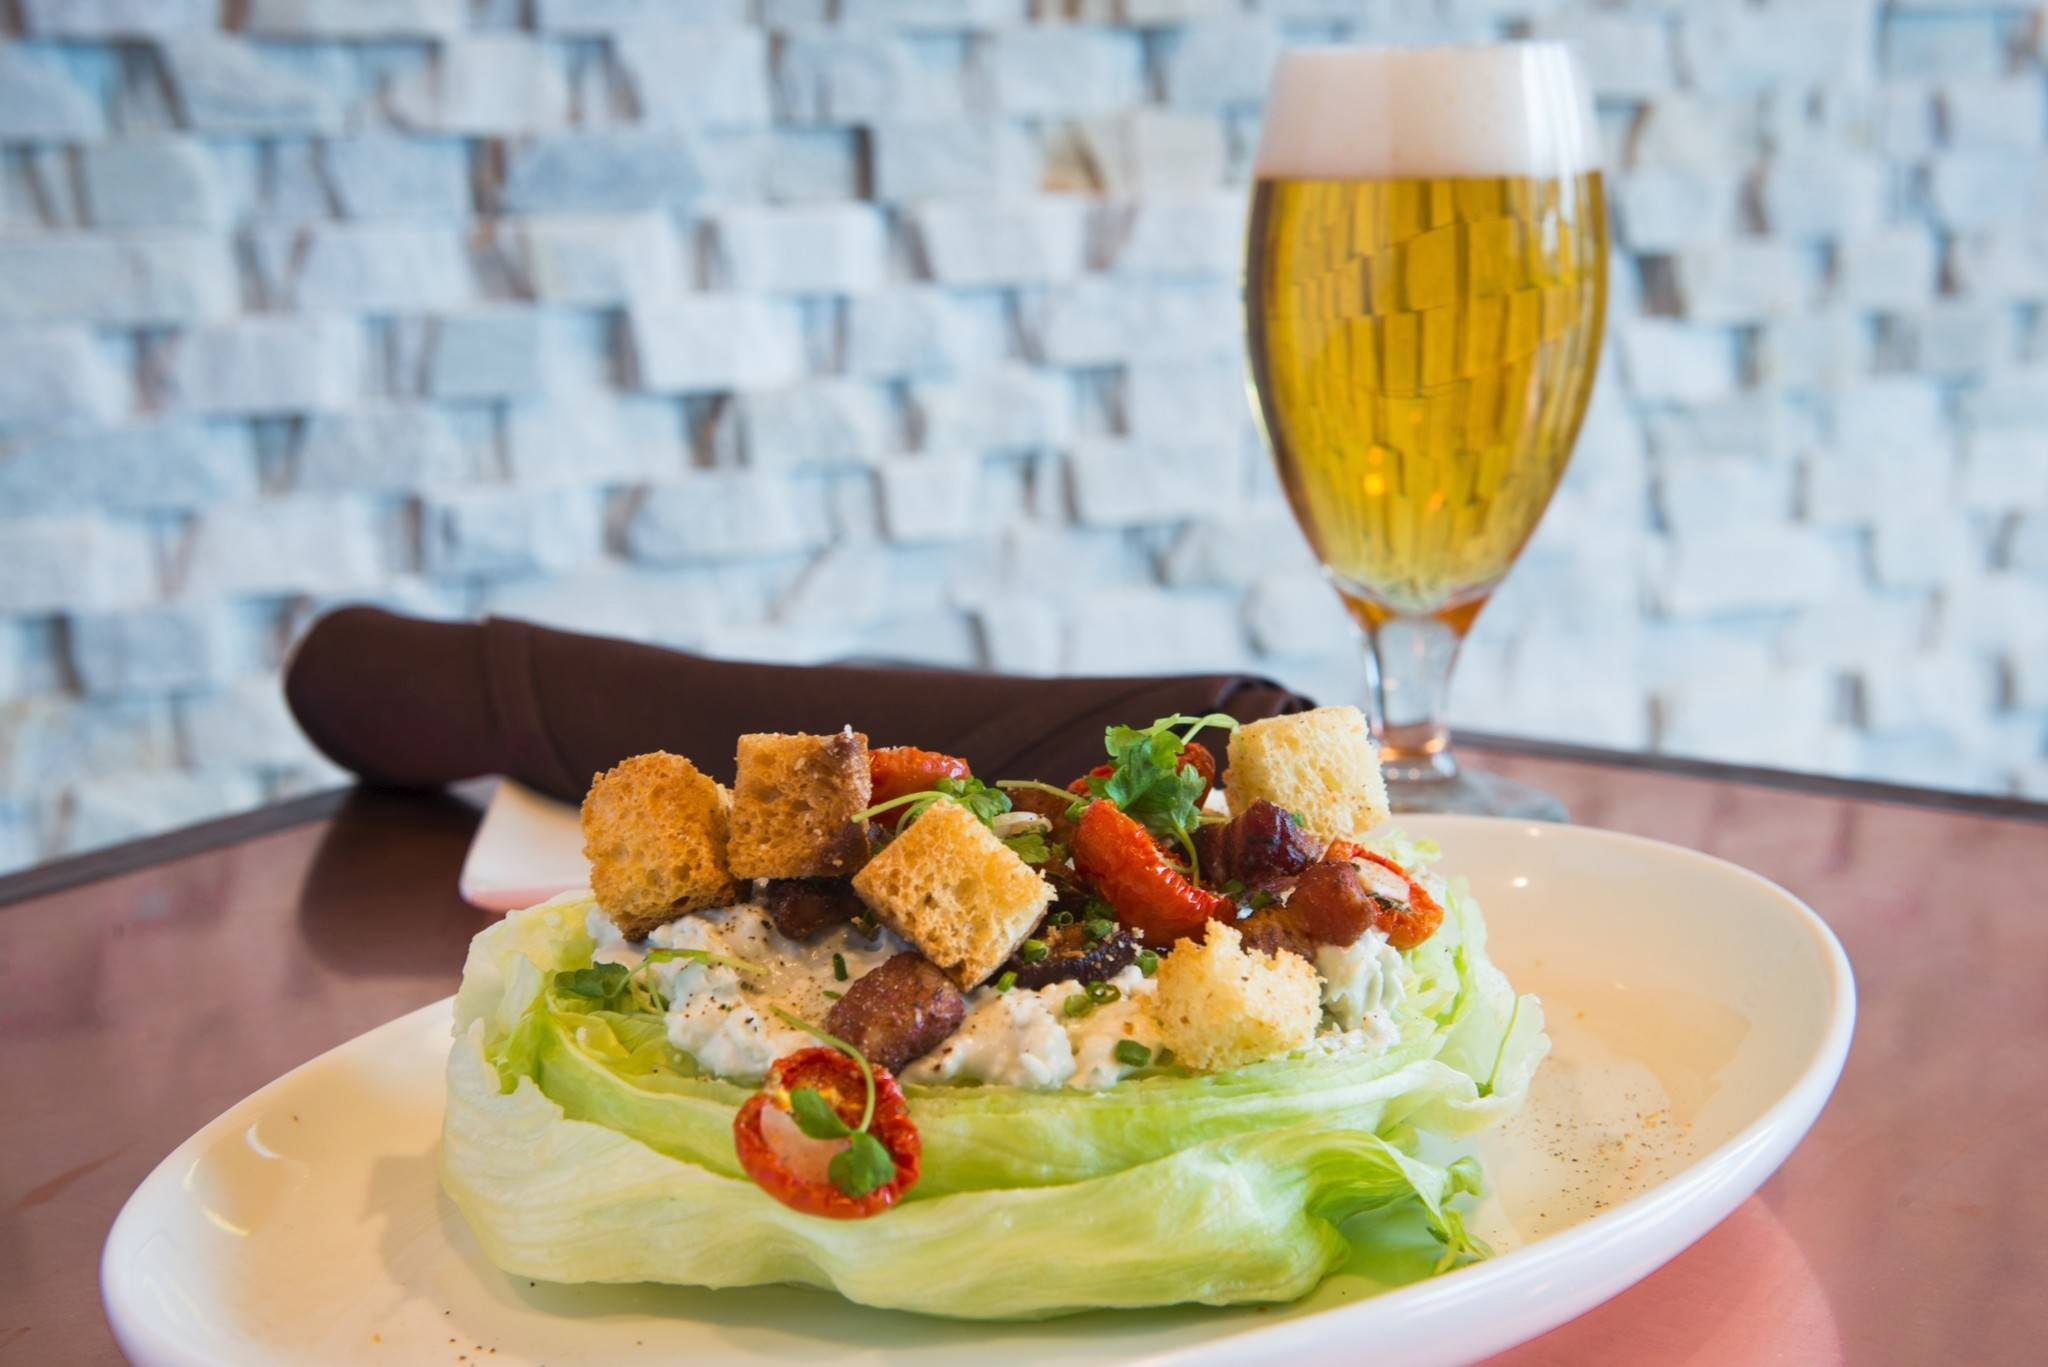 The Wedge is one of several new salads at Old Town POur House in Oak Brook.